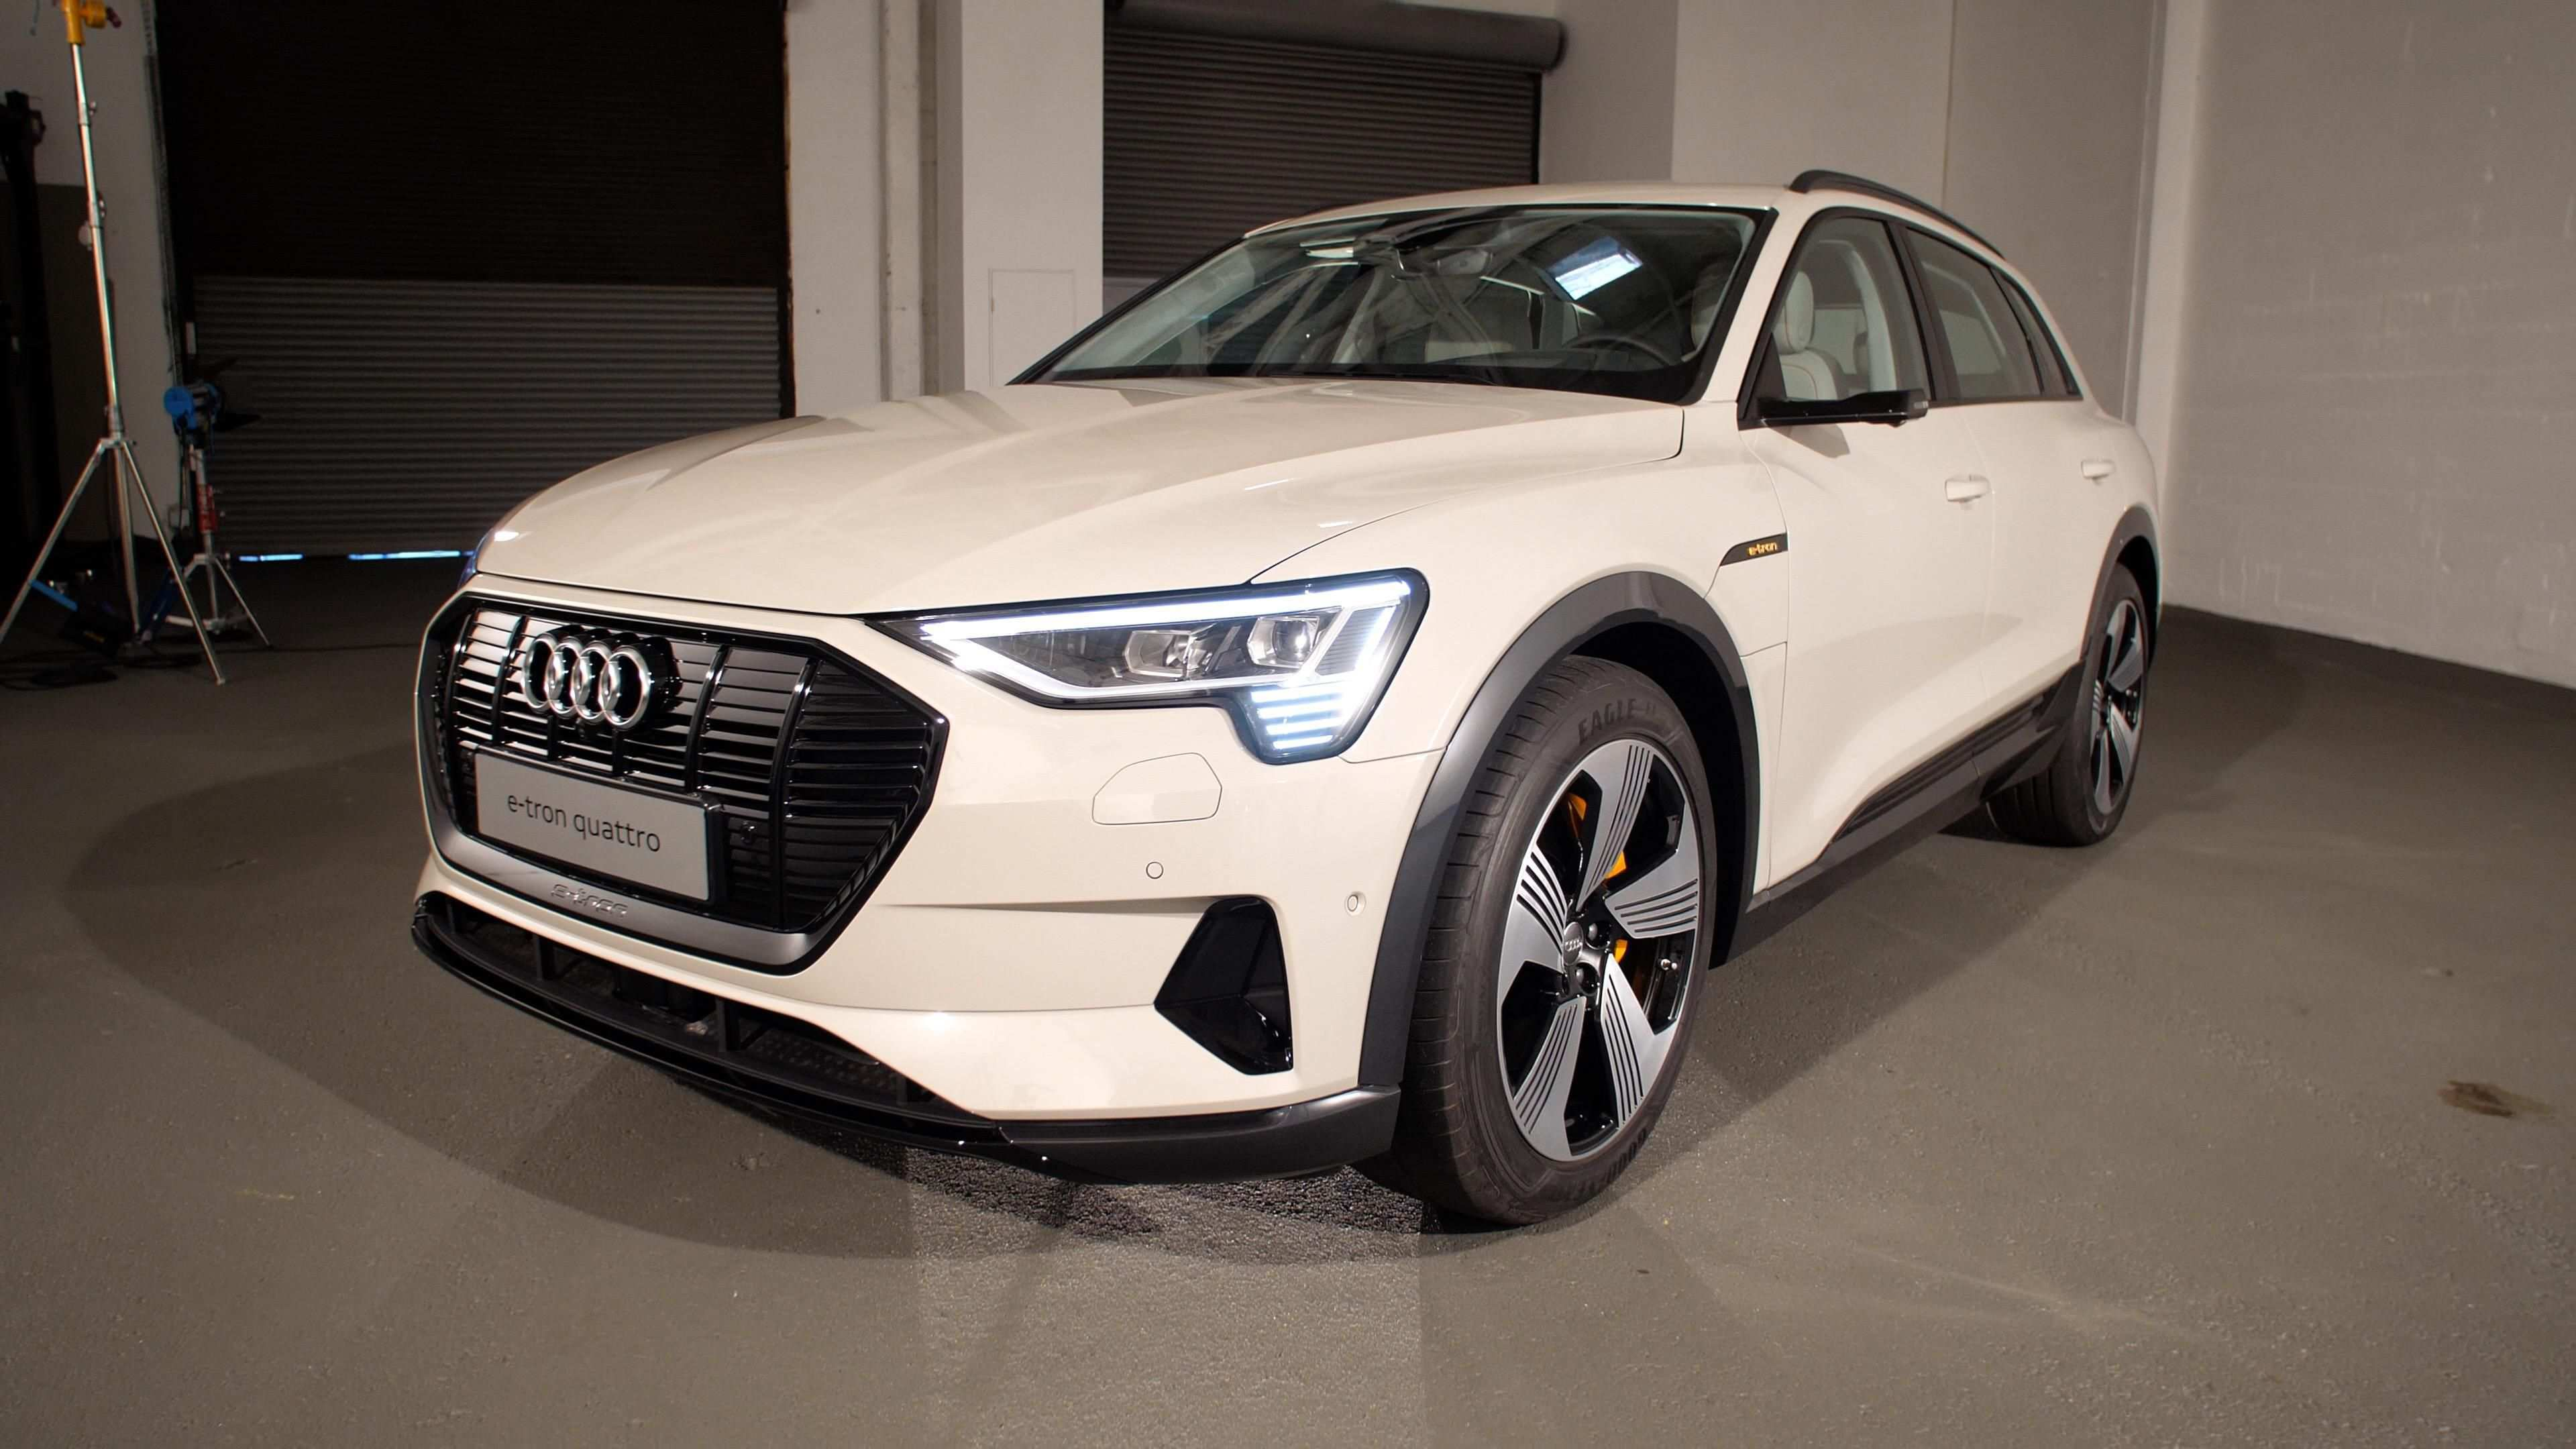 89 New 2019 Audi E Tron Quattro Price Release with 2019 Audi E Tron Quattro Price